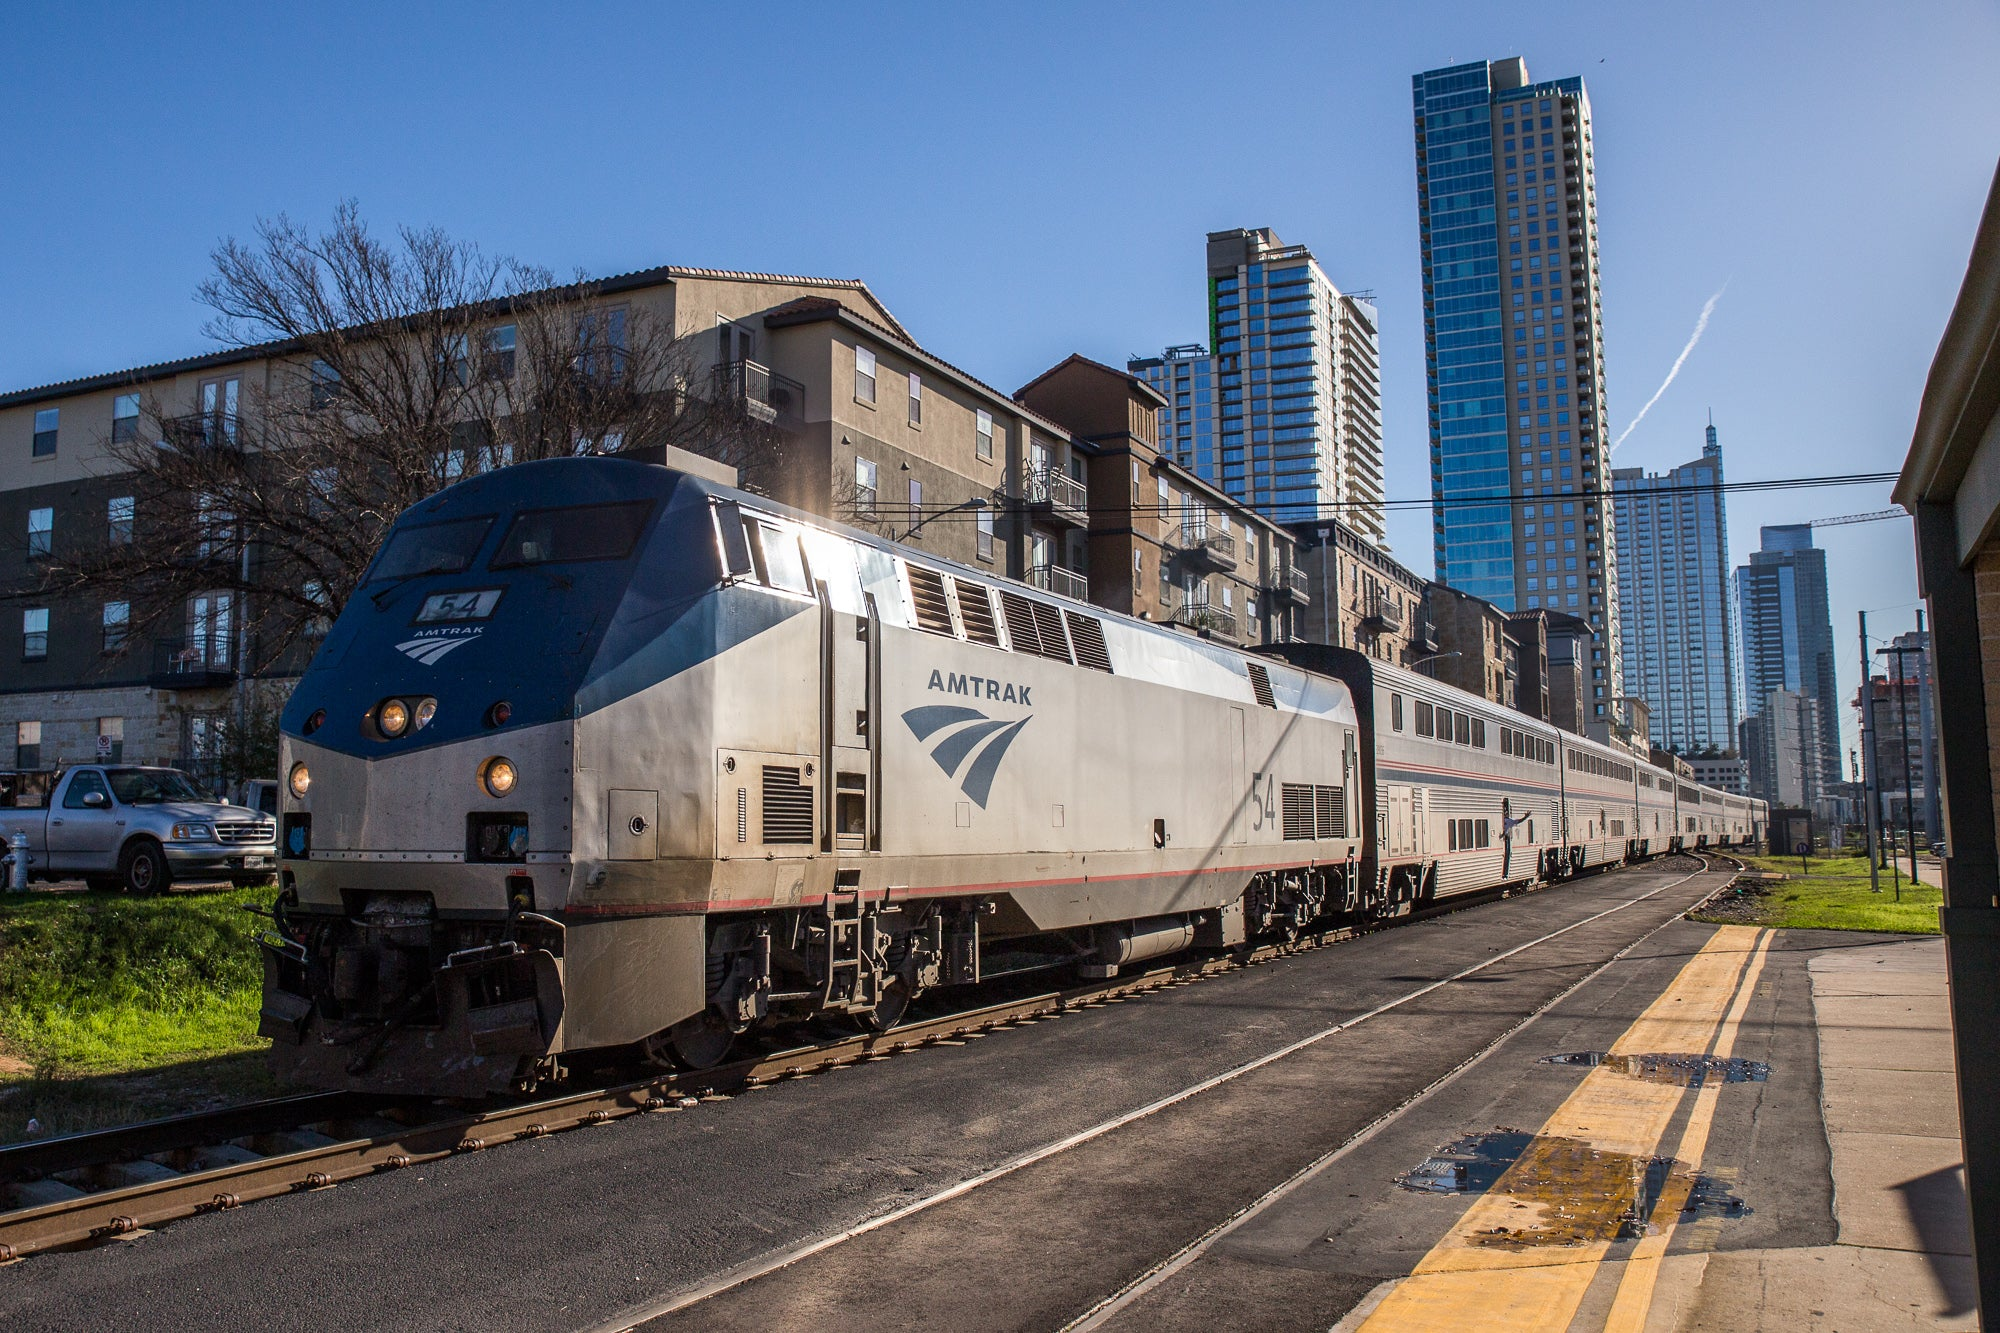 All Aboard The Texas Eagle Austin To Dallas Edition No St James - Bathrooms on amtrak trains